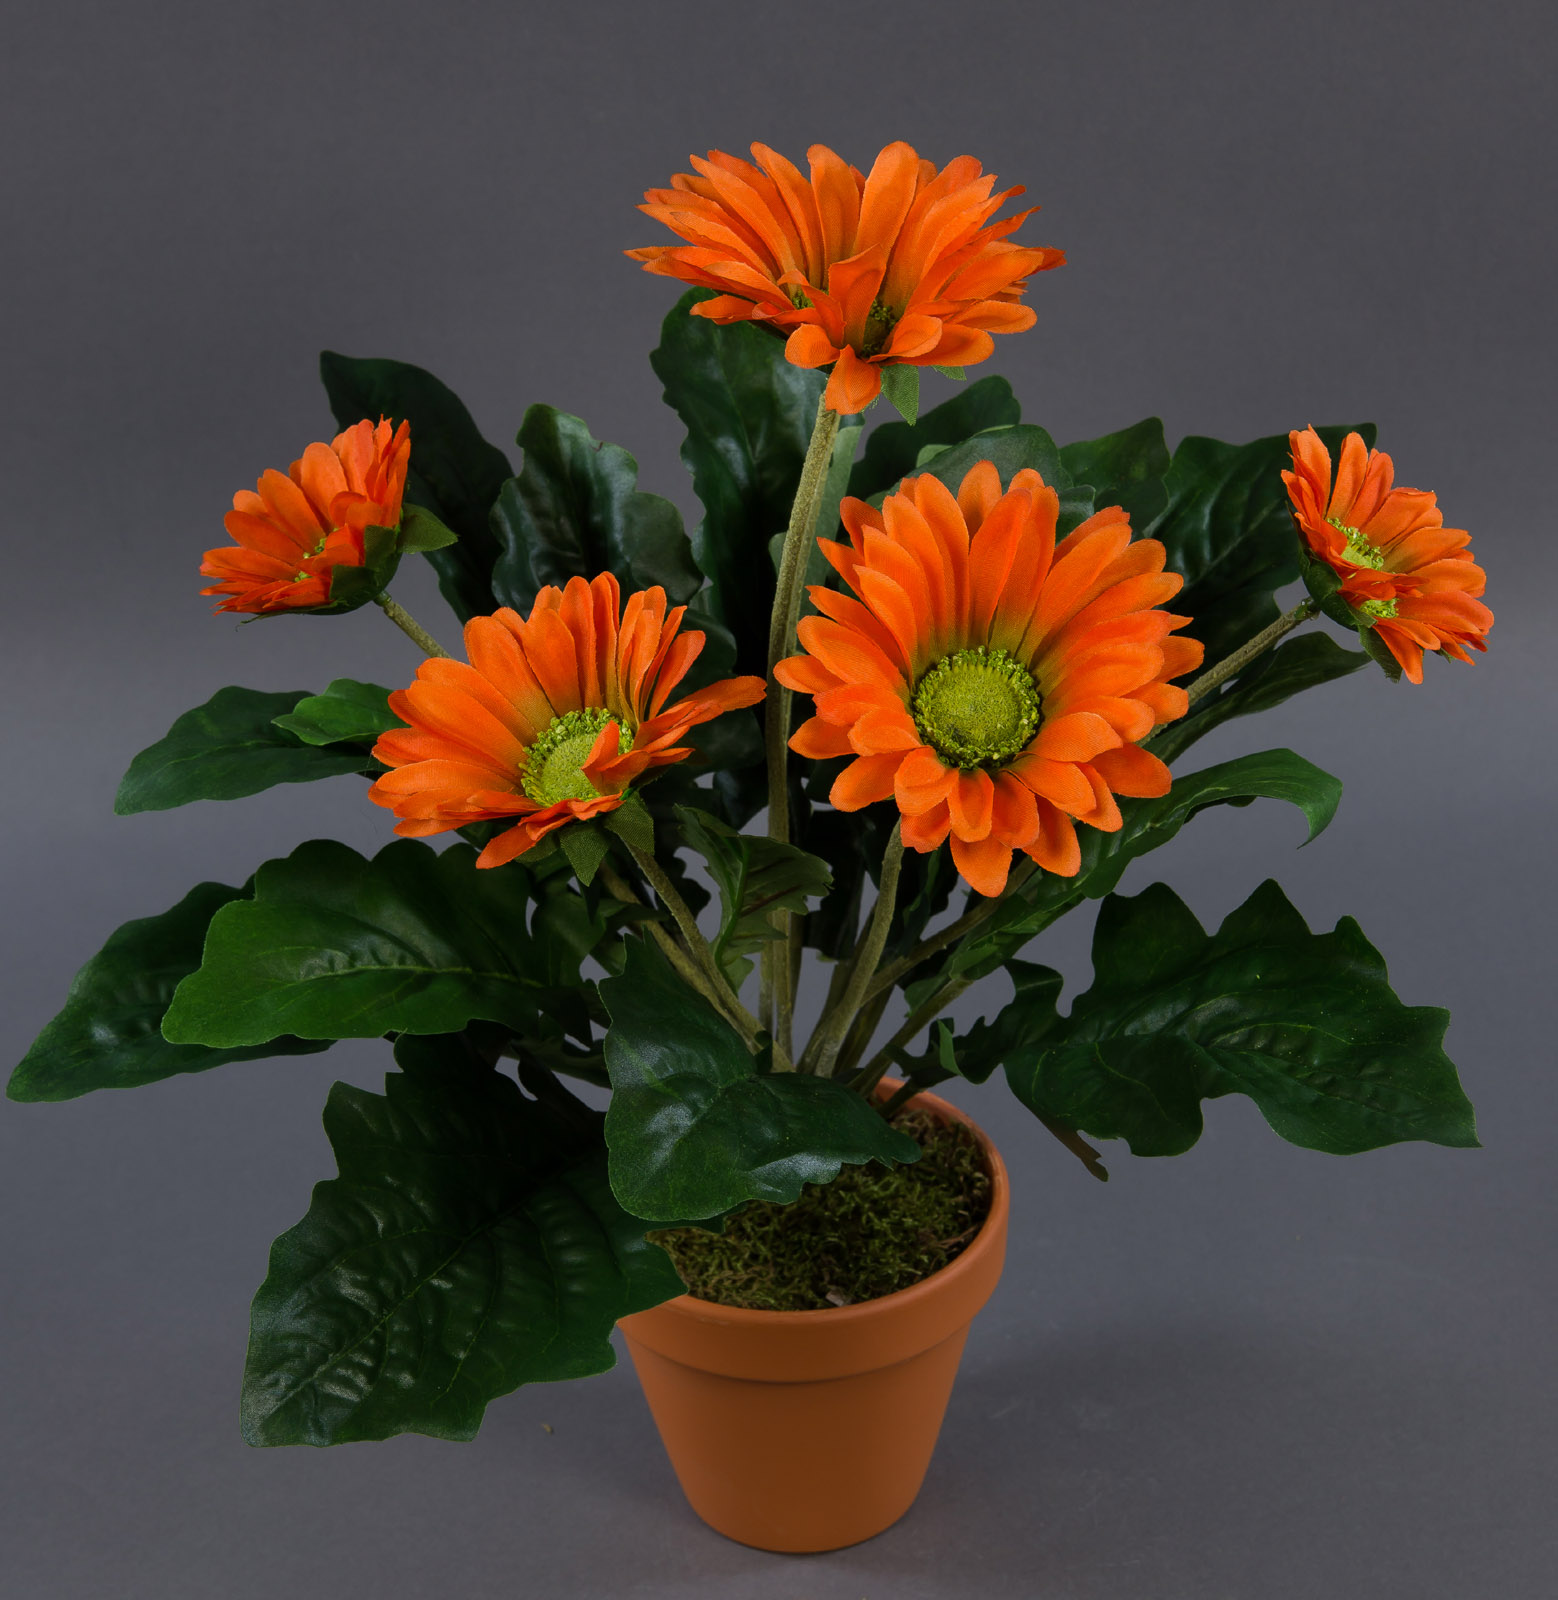 gerbera 38cm orange im topf ga kunstpflanzen k nstliche pflanzen kunstblumen ebay. Black Bedroom Furniture Sets. Home Design Ideas